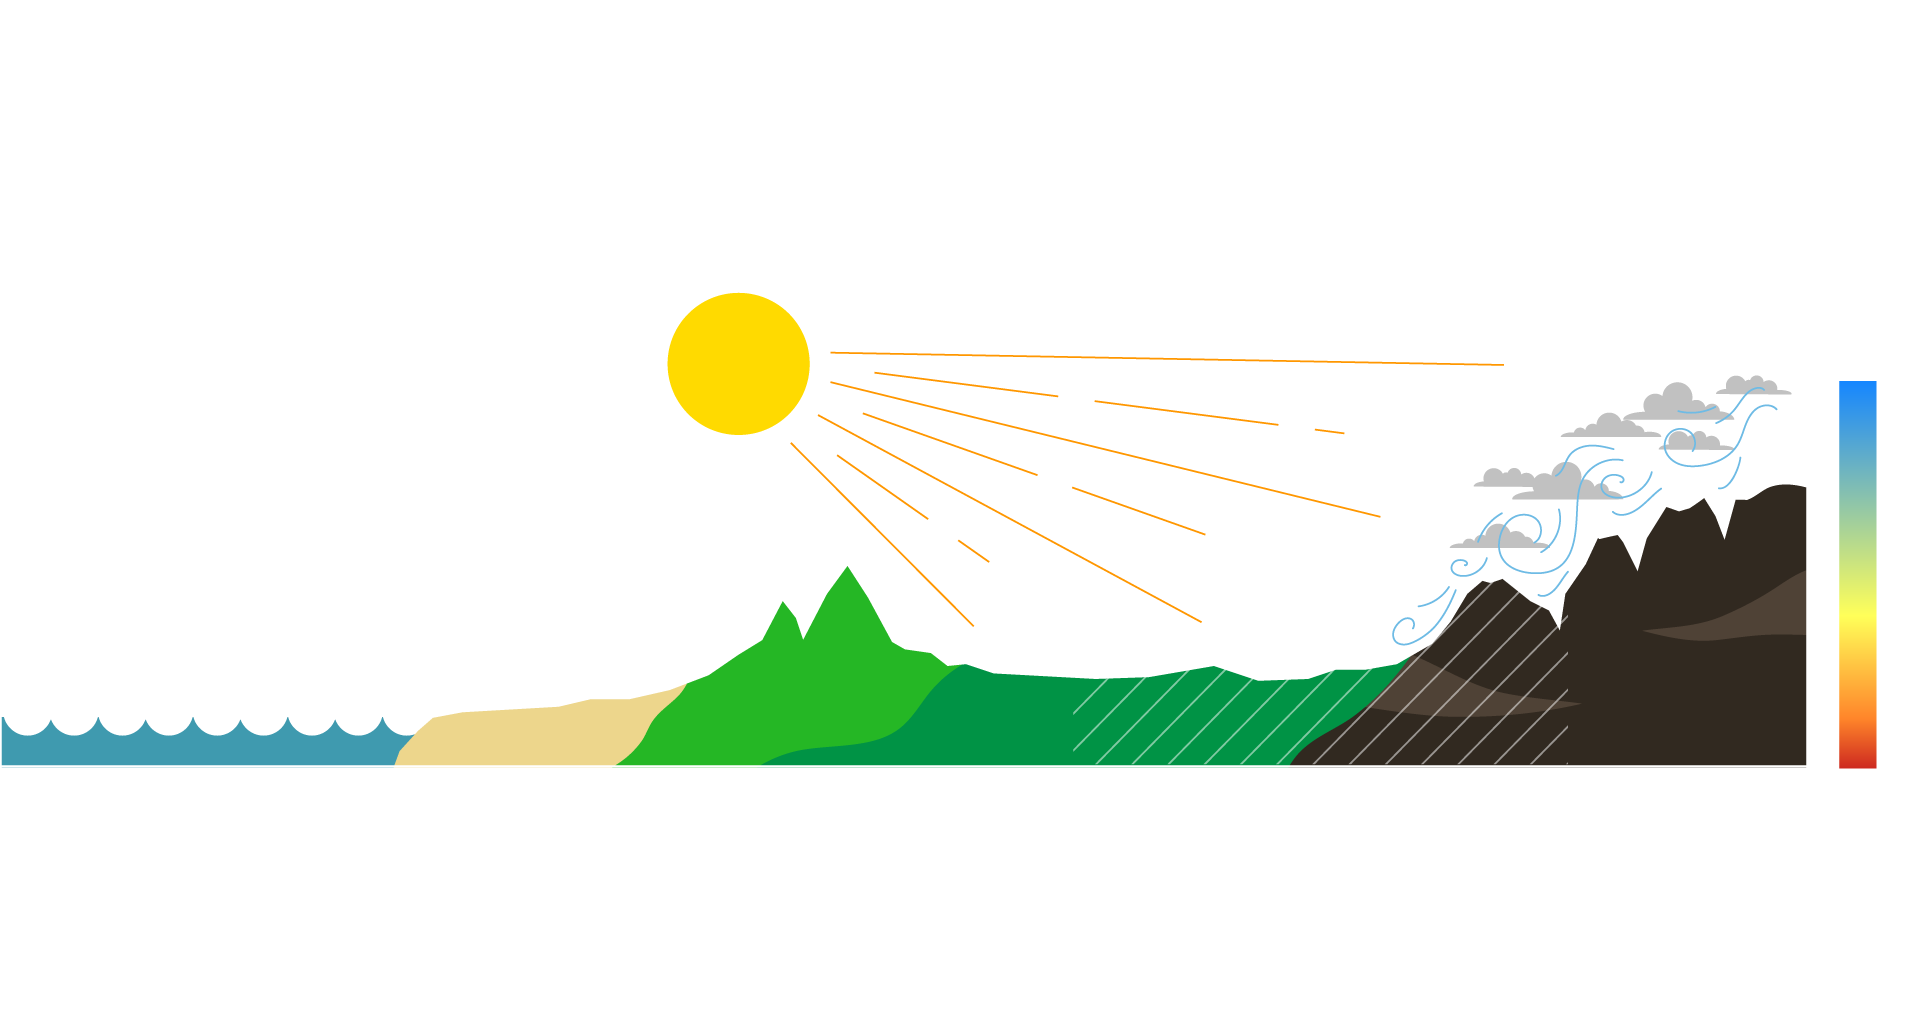 A graphic showing the elevation and varying weather conditions in amador